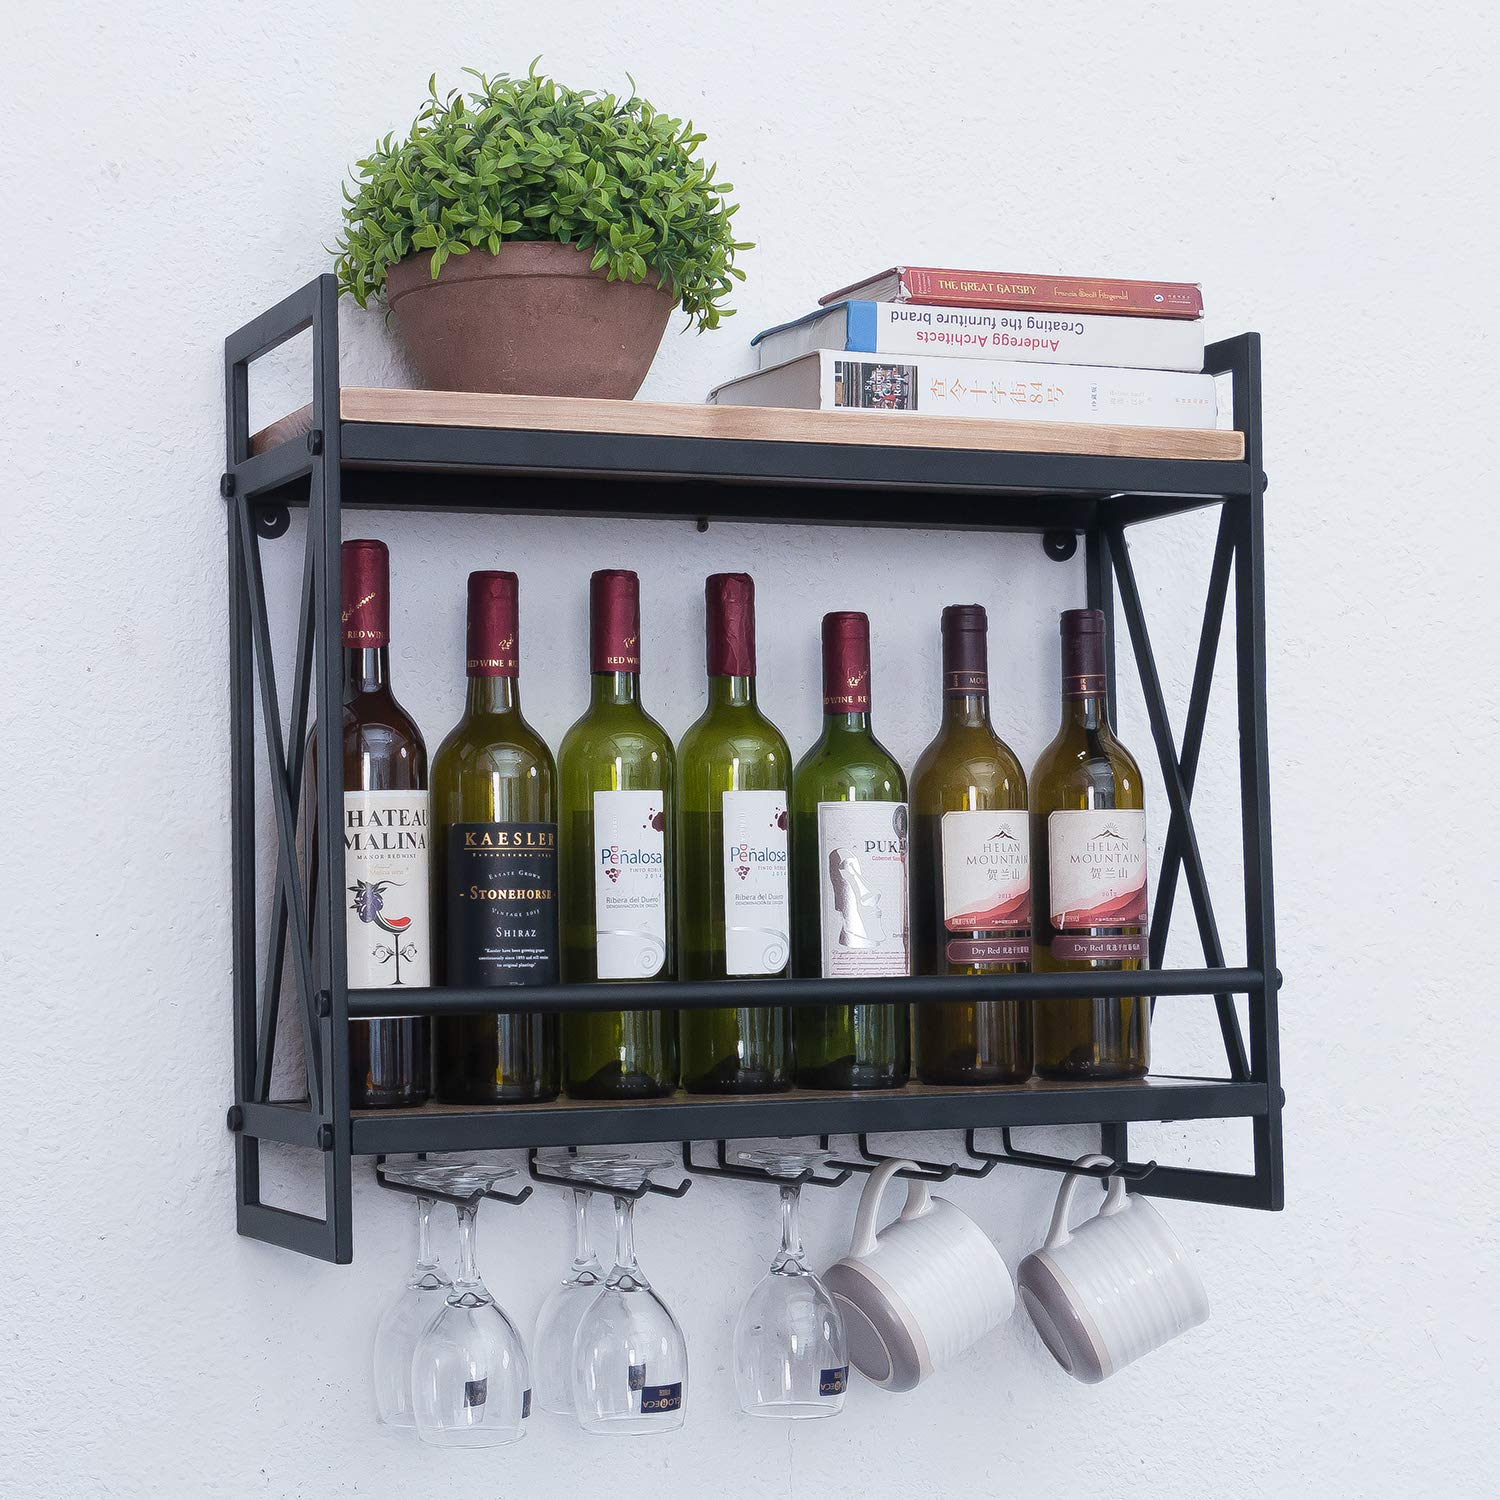 Rustic Wall Mounted Wine Racks with 5 Stem Glass Holder,23.6in Industrial Metal Hanging Wine Rack,2-Tiers Wood Shelf Floating Shelves,Home Room Living Room Kitchen Decor Display Rack by MBQQ